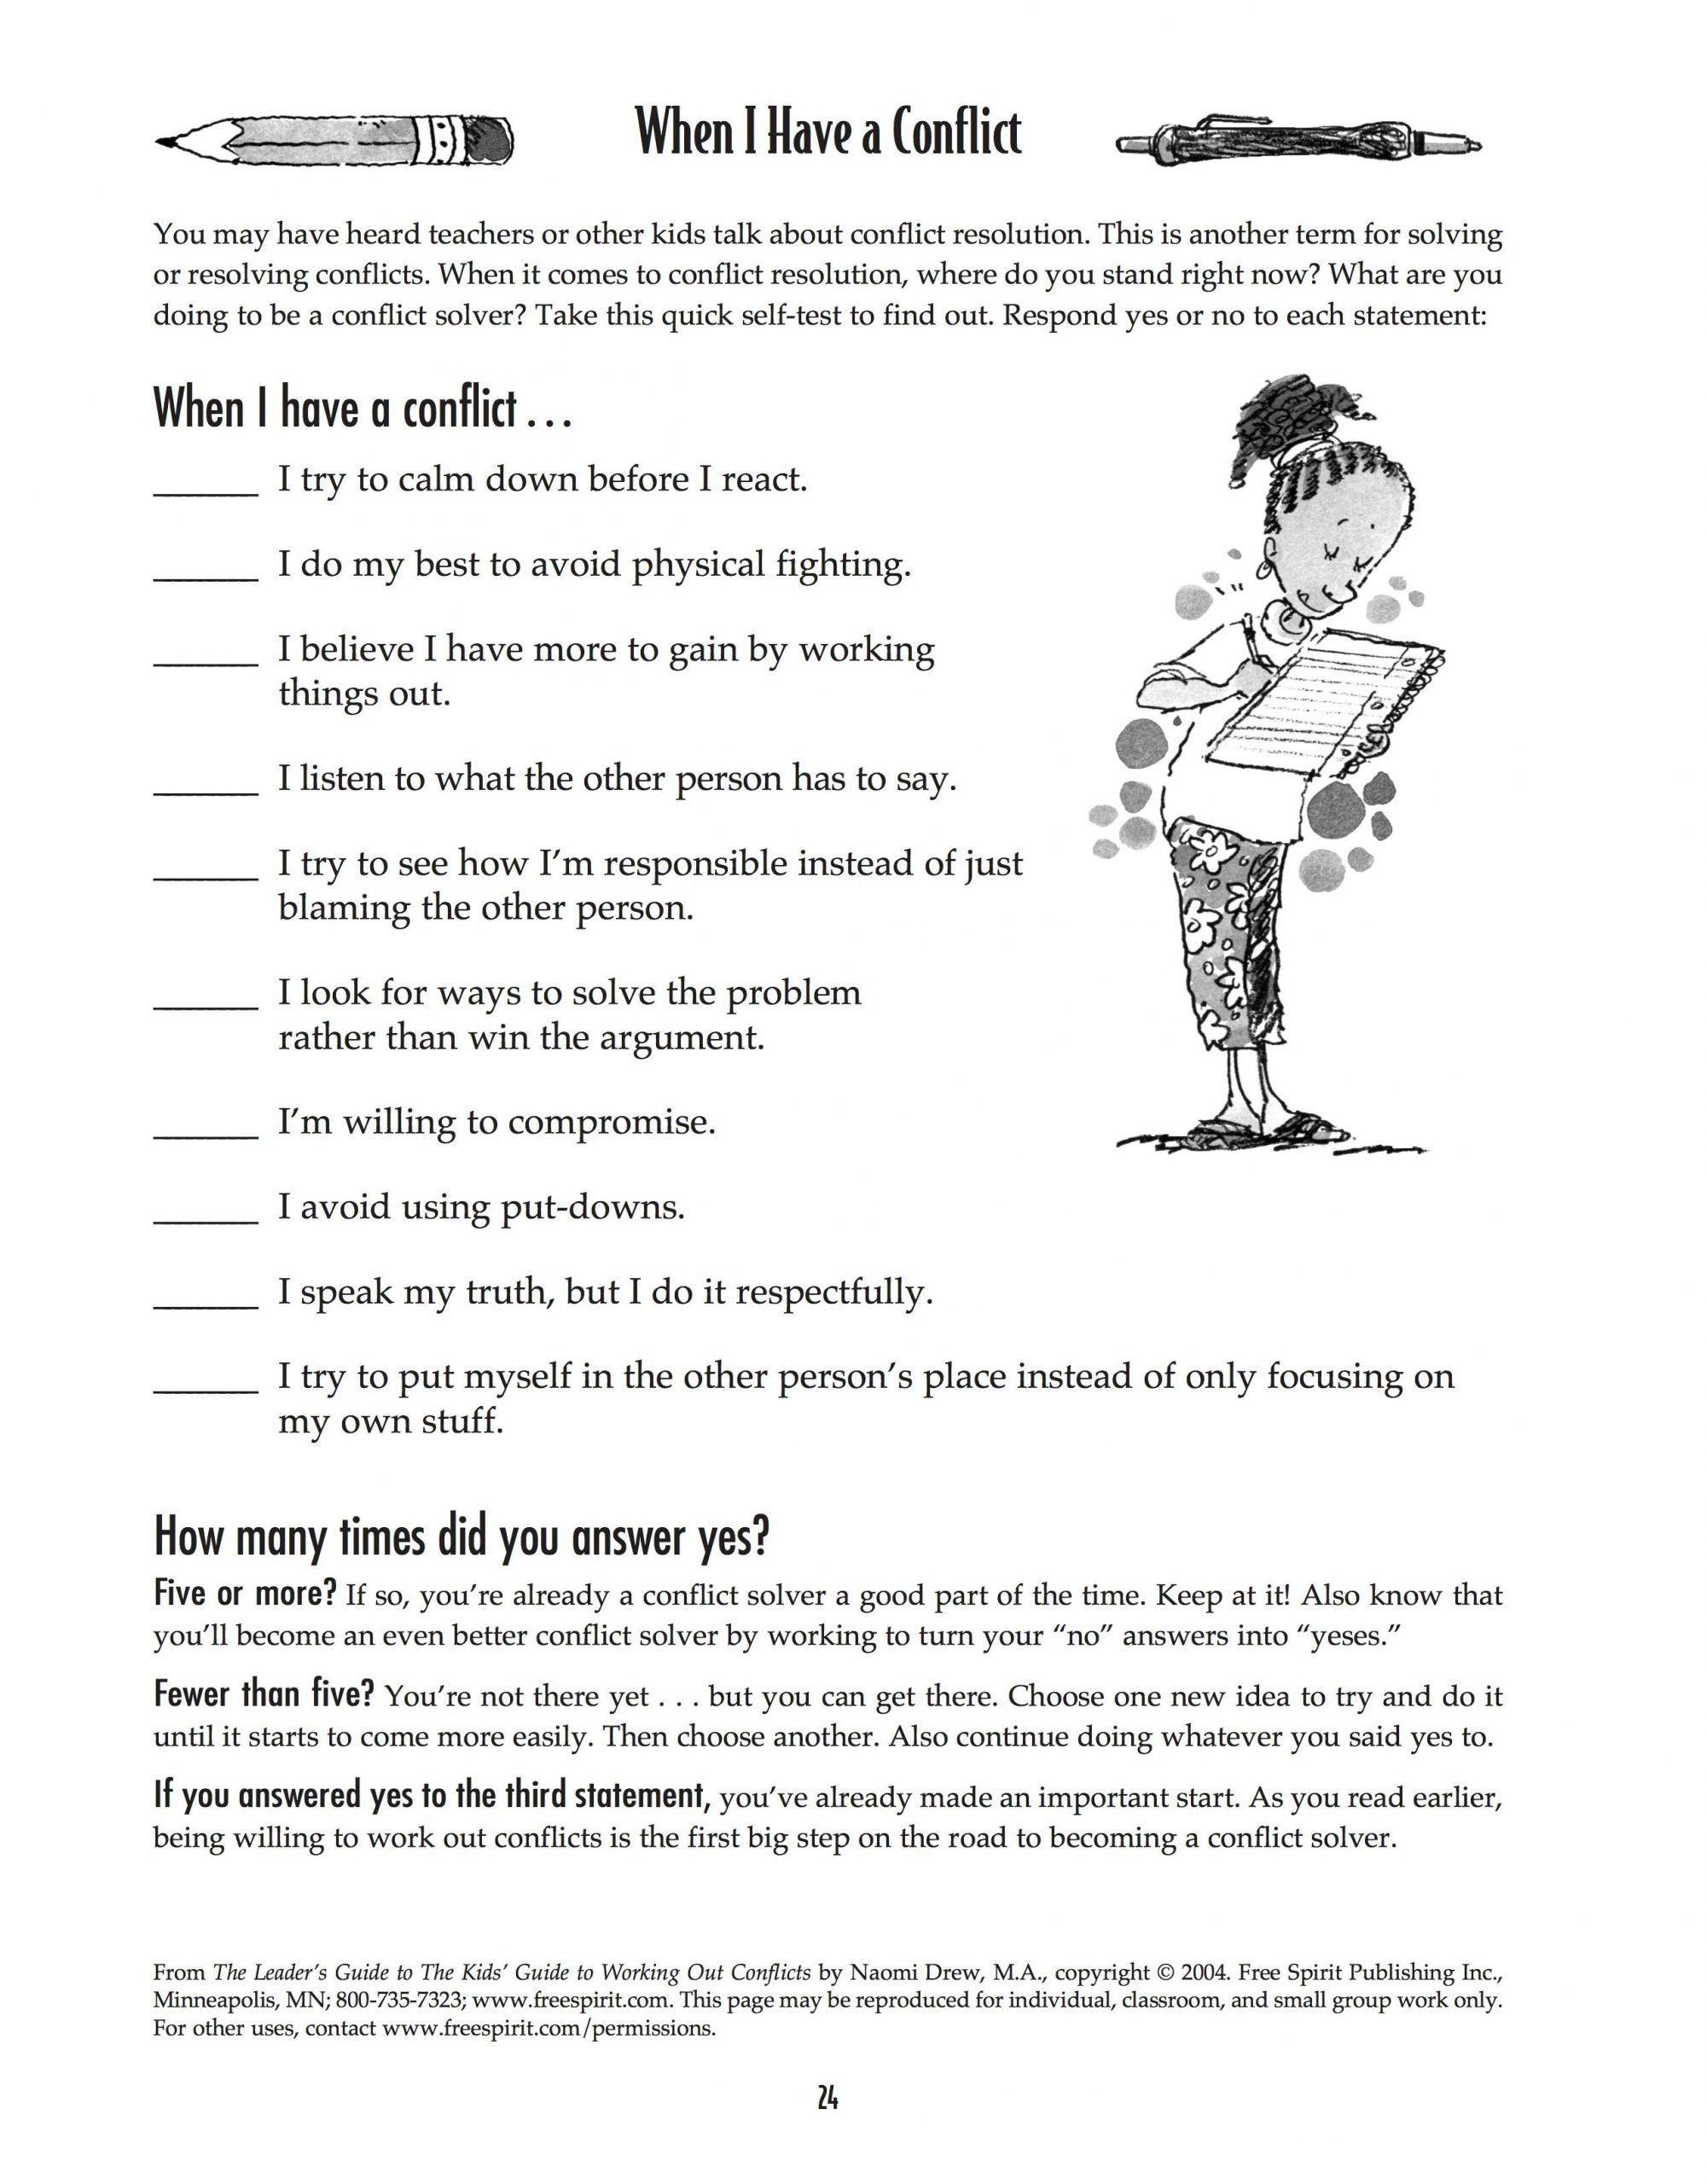 Conflict Resolution Worksheets for Students Free Printable Worksheet when I Have A Conflict A Quick